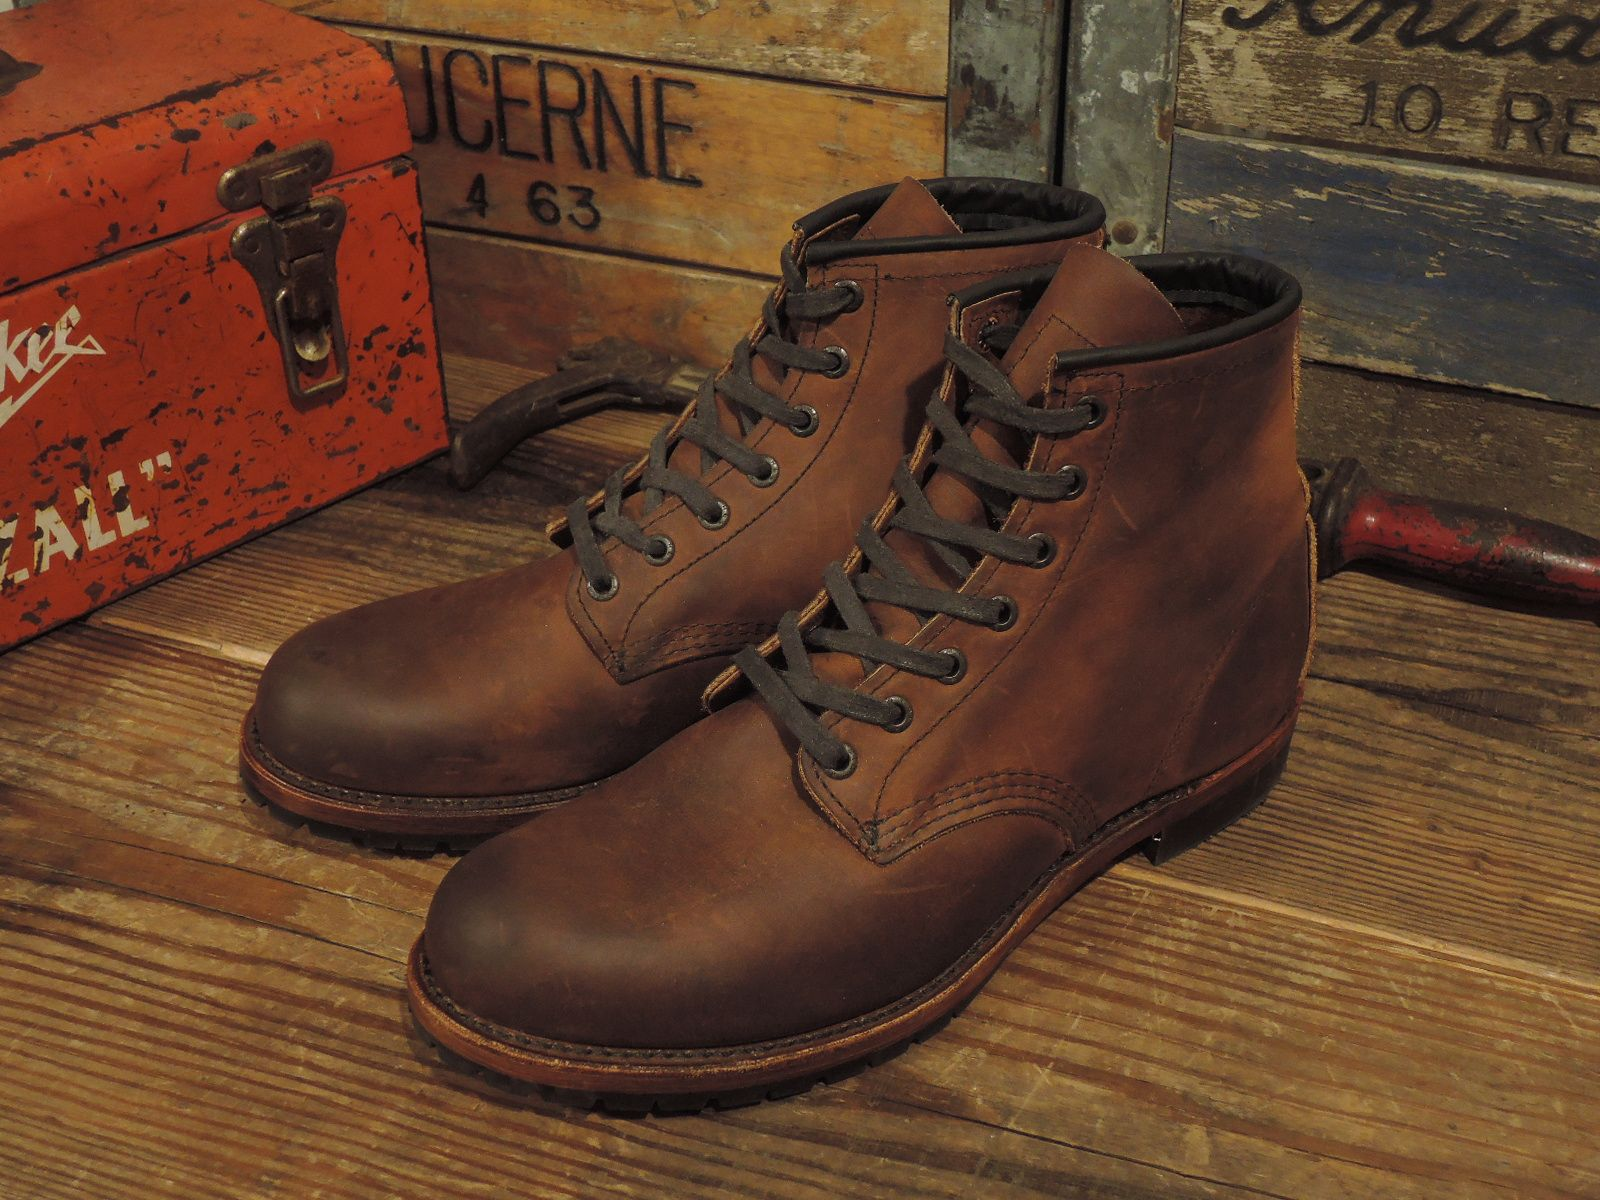 13990adf527 J CREW x RED WING : BECKMAN BOOTS   CONEY ISLAND   Men's Boots ...